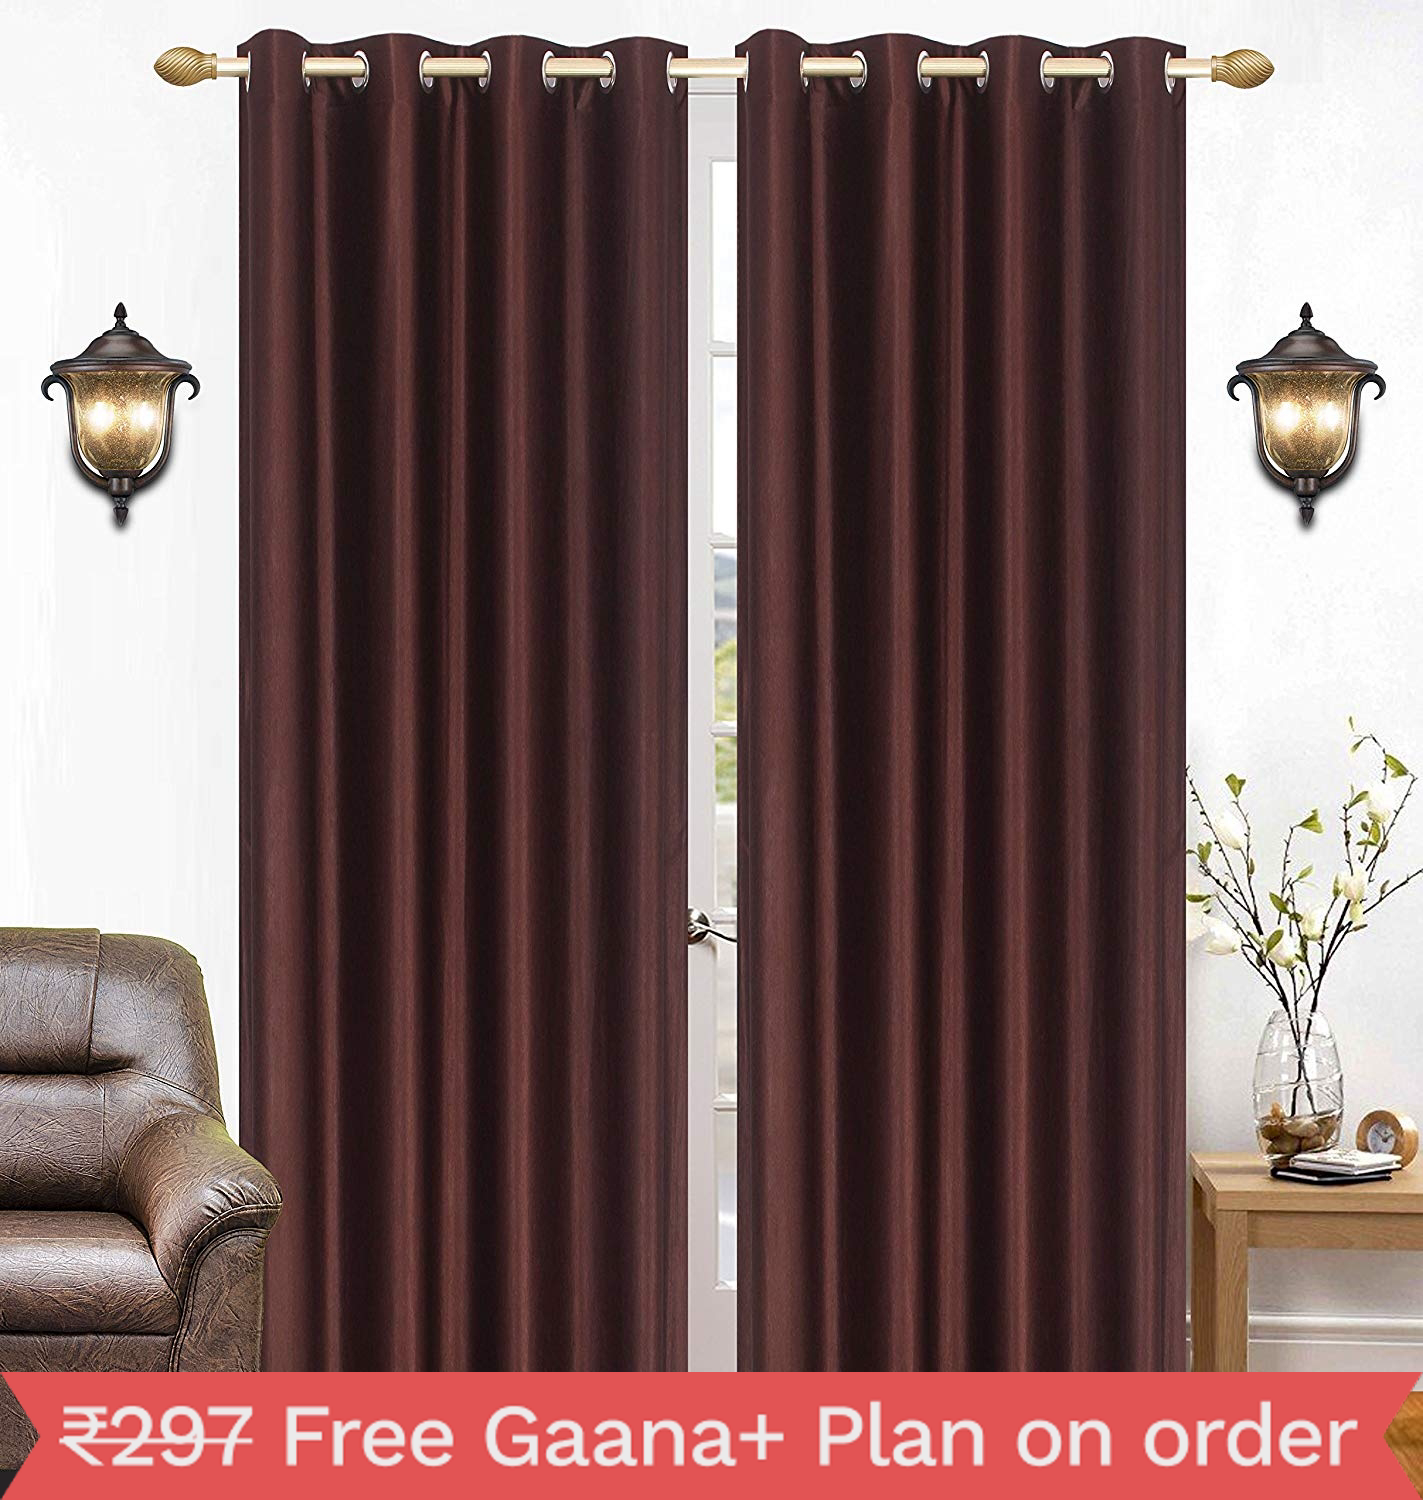 Homelogy Single Piece Crush Curtain Brown